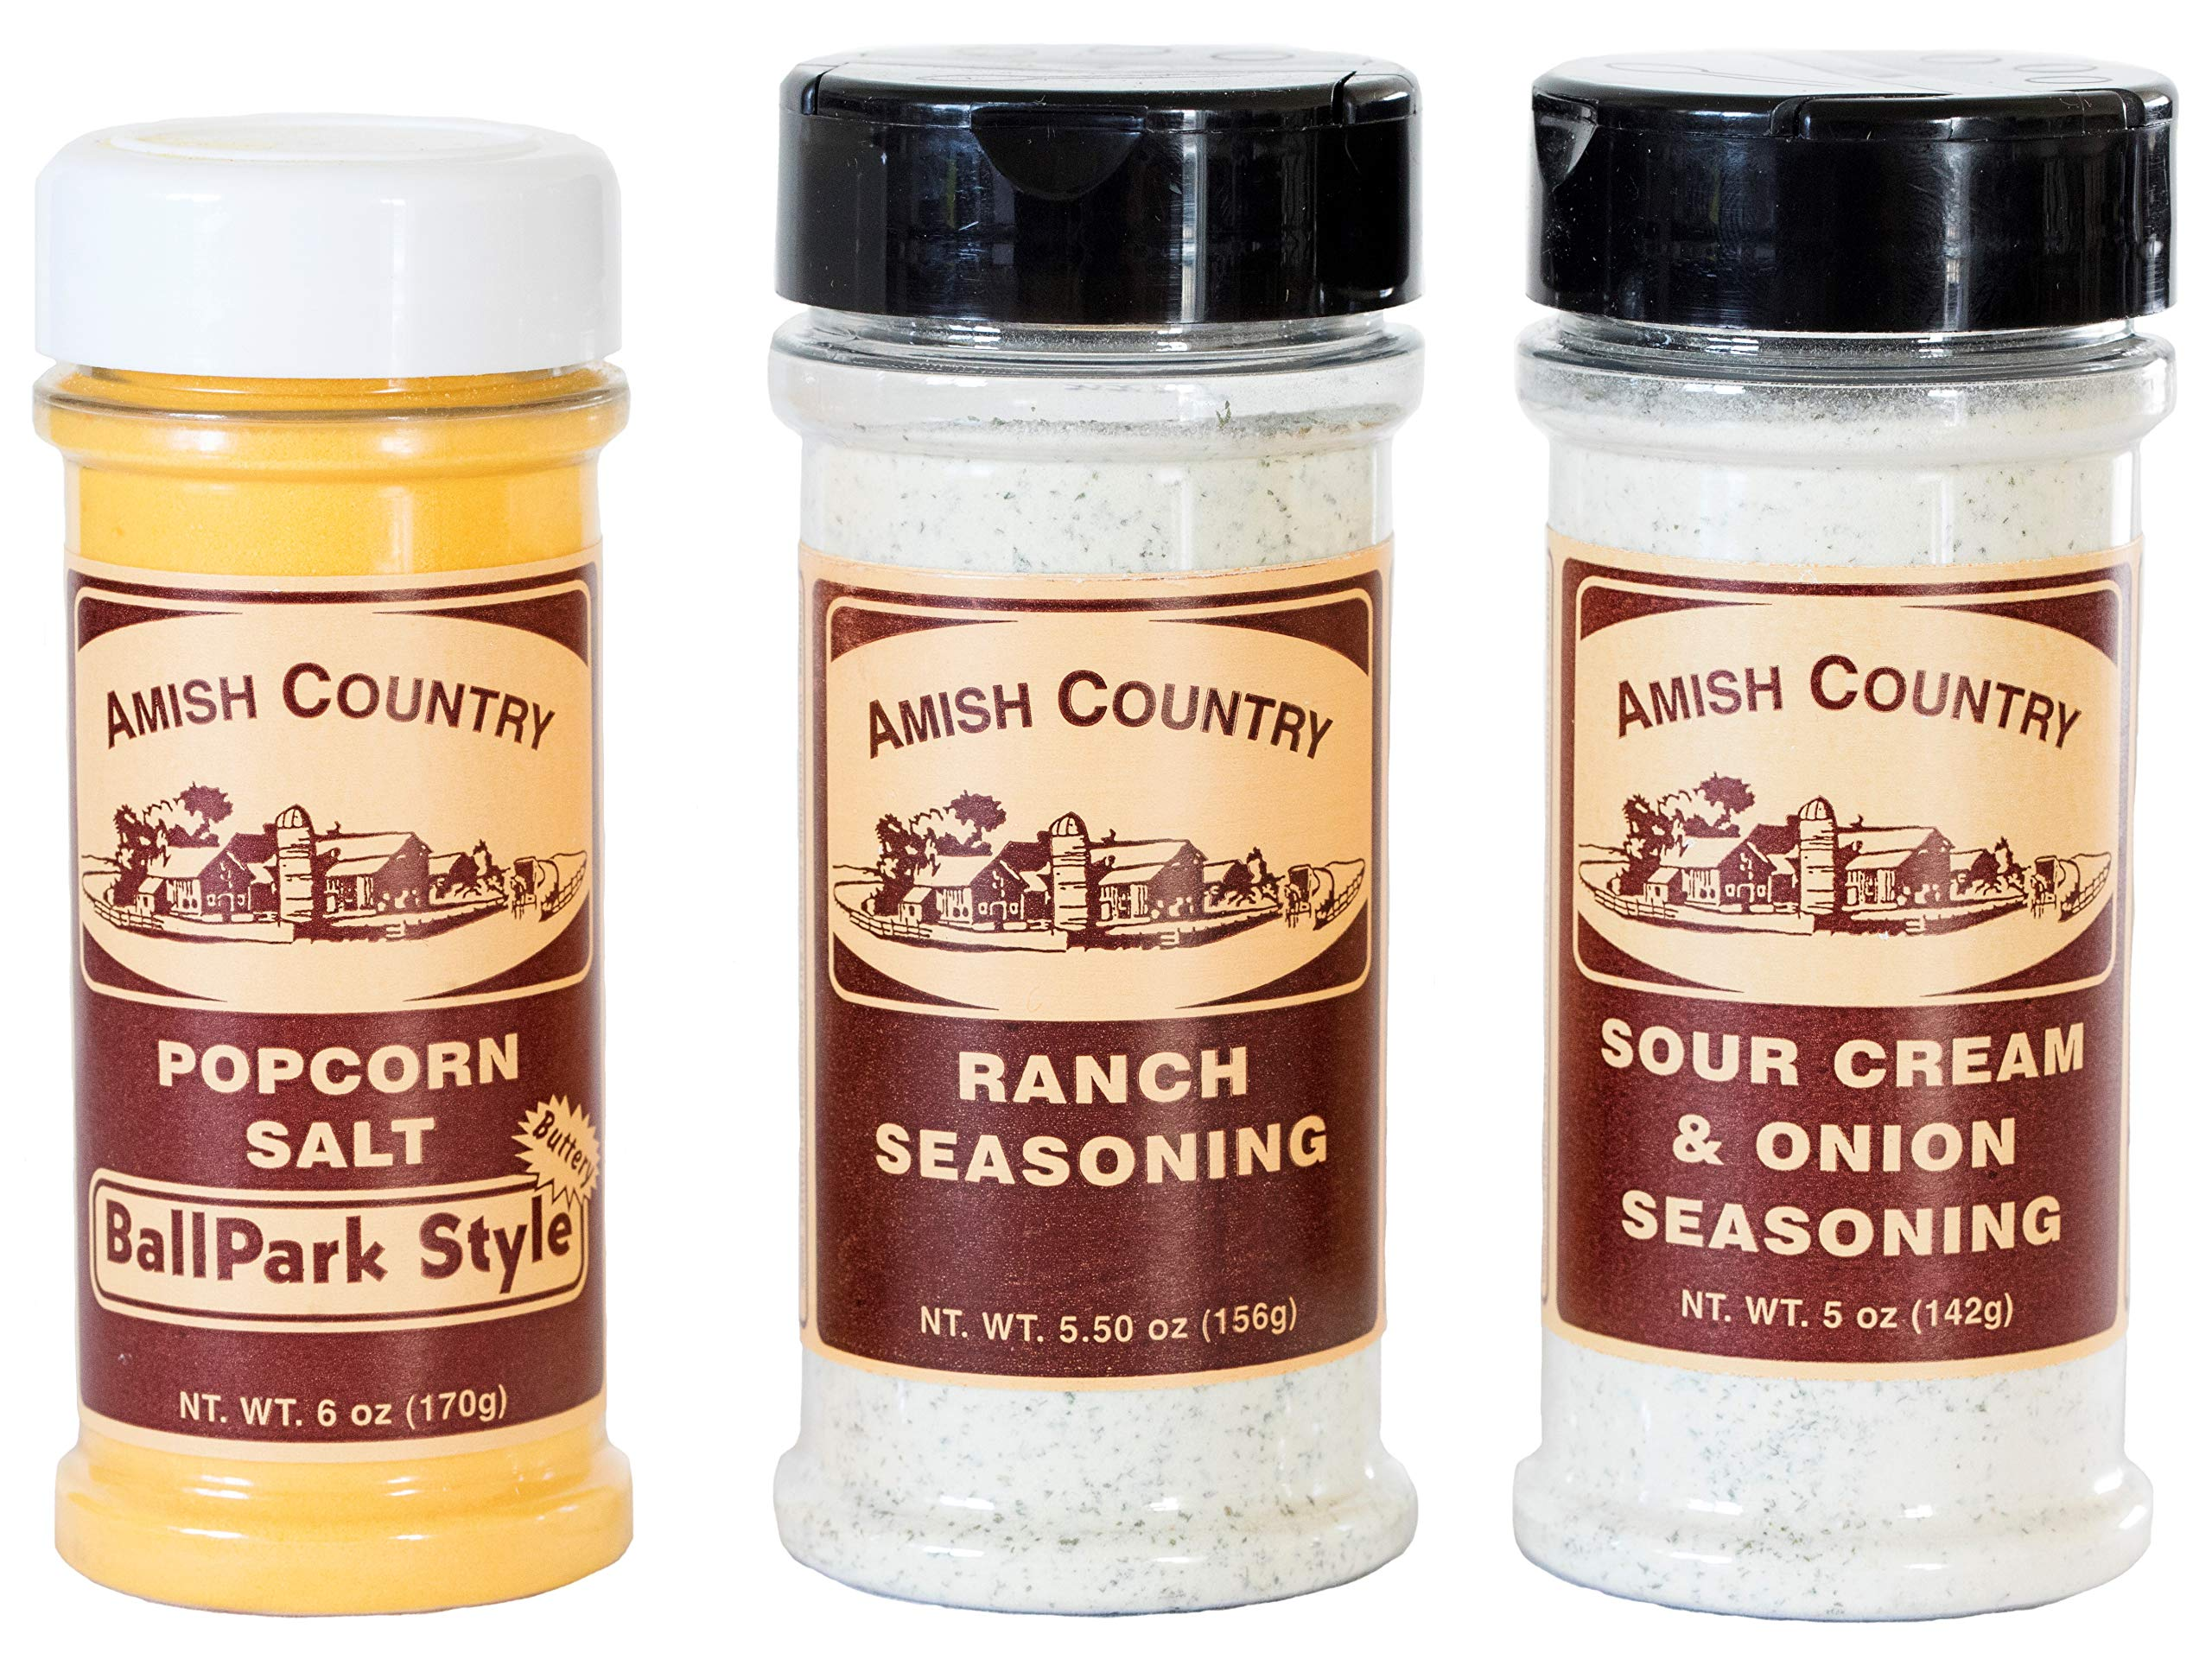 Amish Country Popcorn - Ballpark Style ButterSalt (6 Oz), Ranch (5.5 Oz) & Sour Cream (5 Oz) Popcorn Seasoning - Old Fashioned with Recipe Guide by Amish Country Popcorn